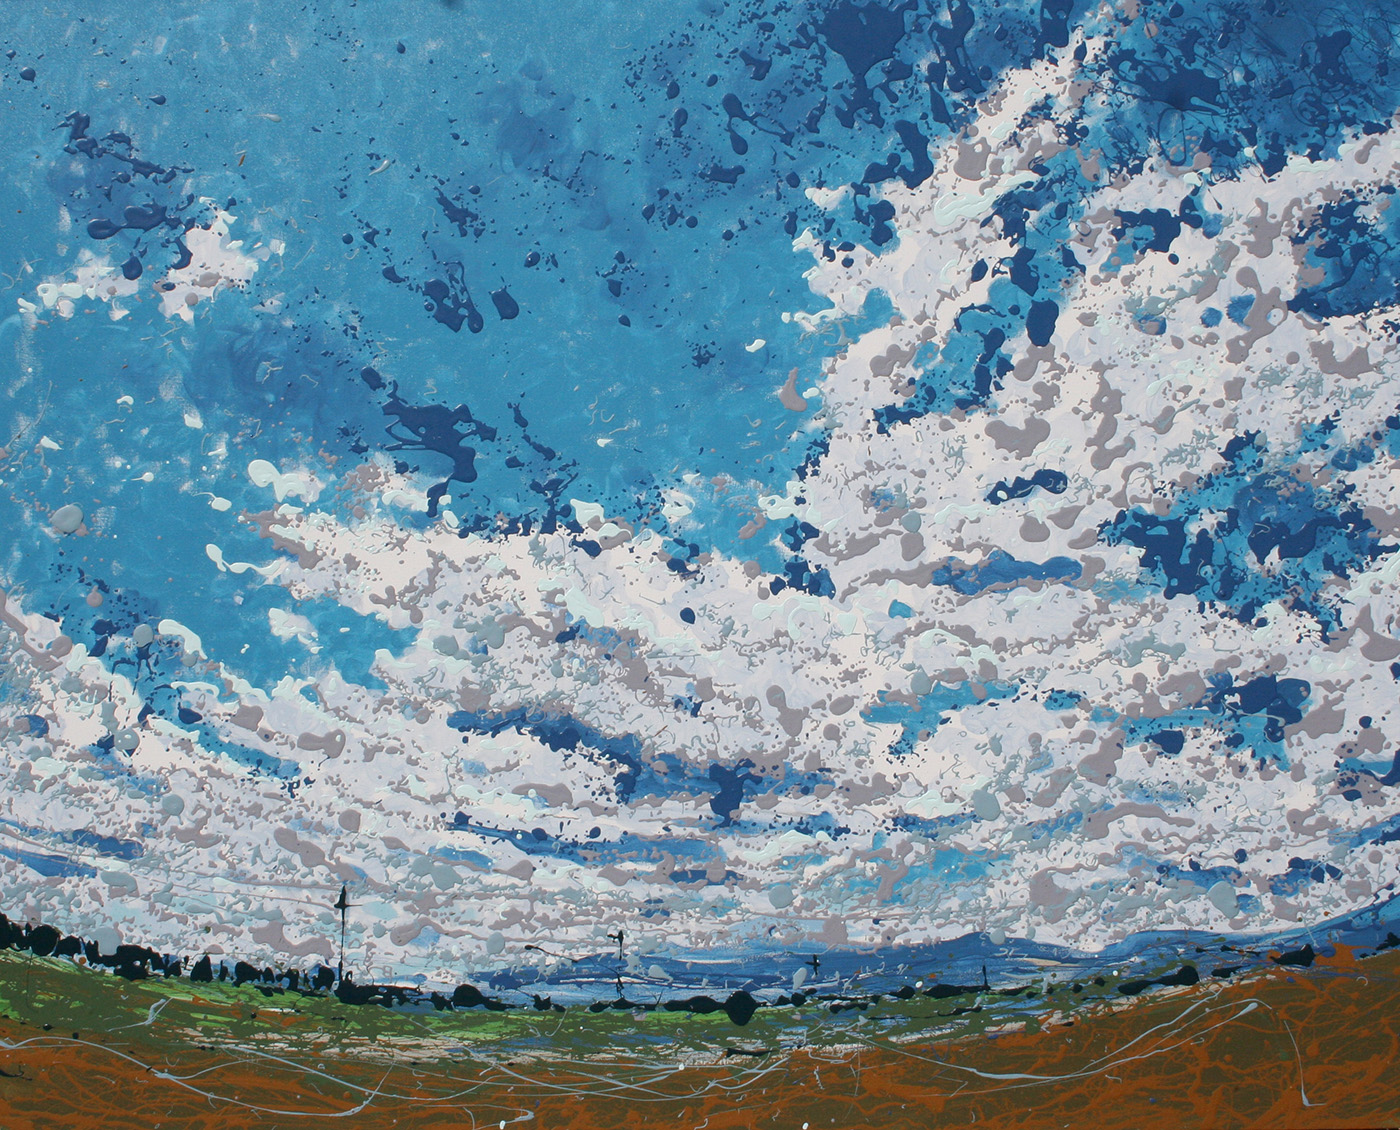 Cloud Latex Enamel Painting on Gallery Wrapped Canvas by Fort Collins, Colorado Artist Lisa Cameron Russell